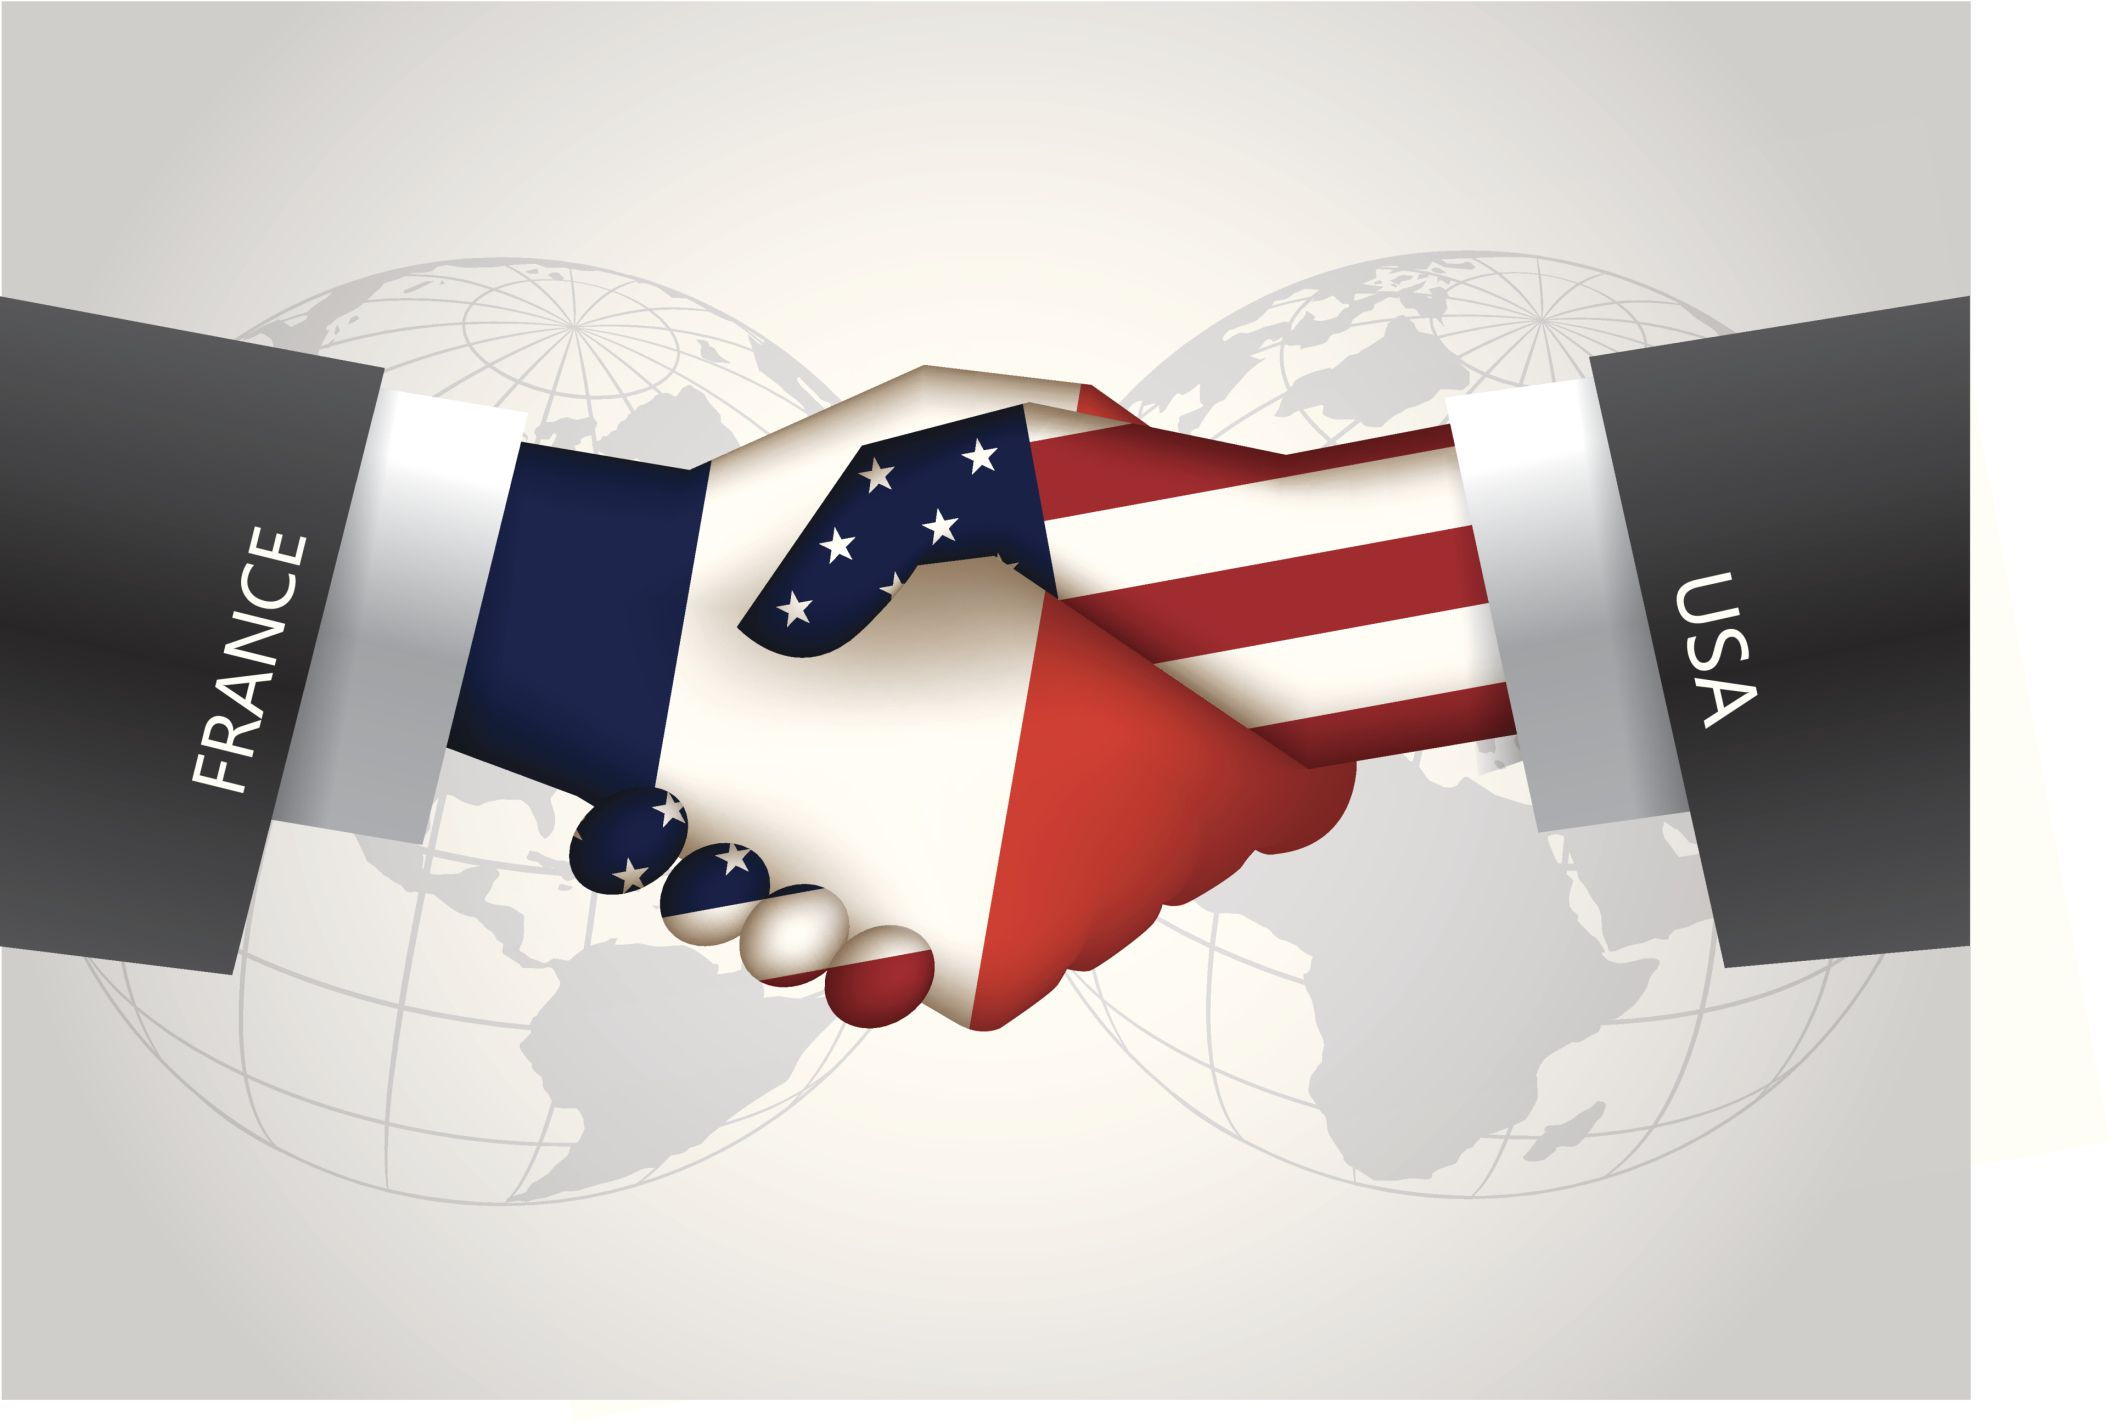 united states and french relationship essay The french revolution had an impact on the politics and laws of the united states it was also a primary motivator behind the passage of the alien and sedition acts in 1798 when the french revolution began in 1789, americans were largely supportive of it the united states was allied with france at.